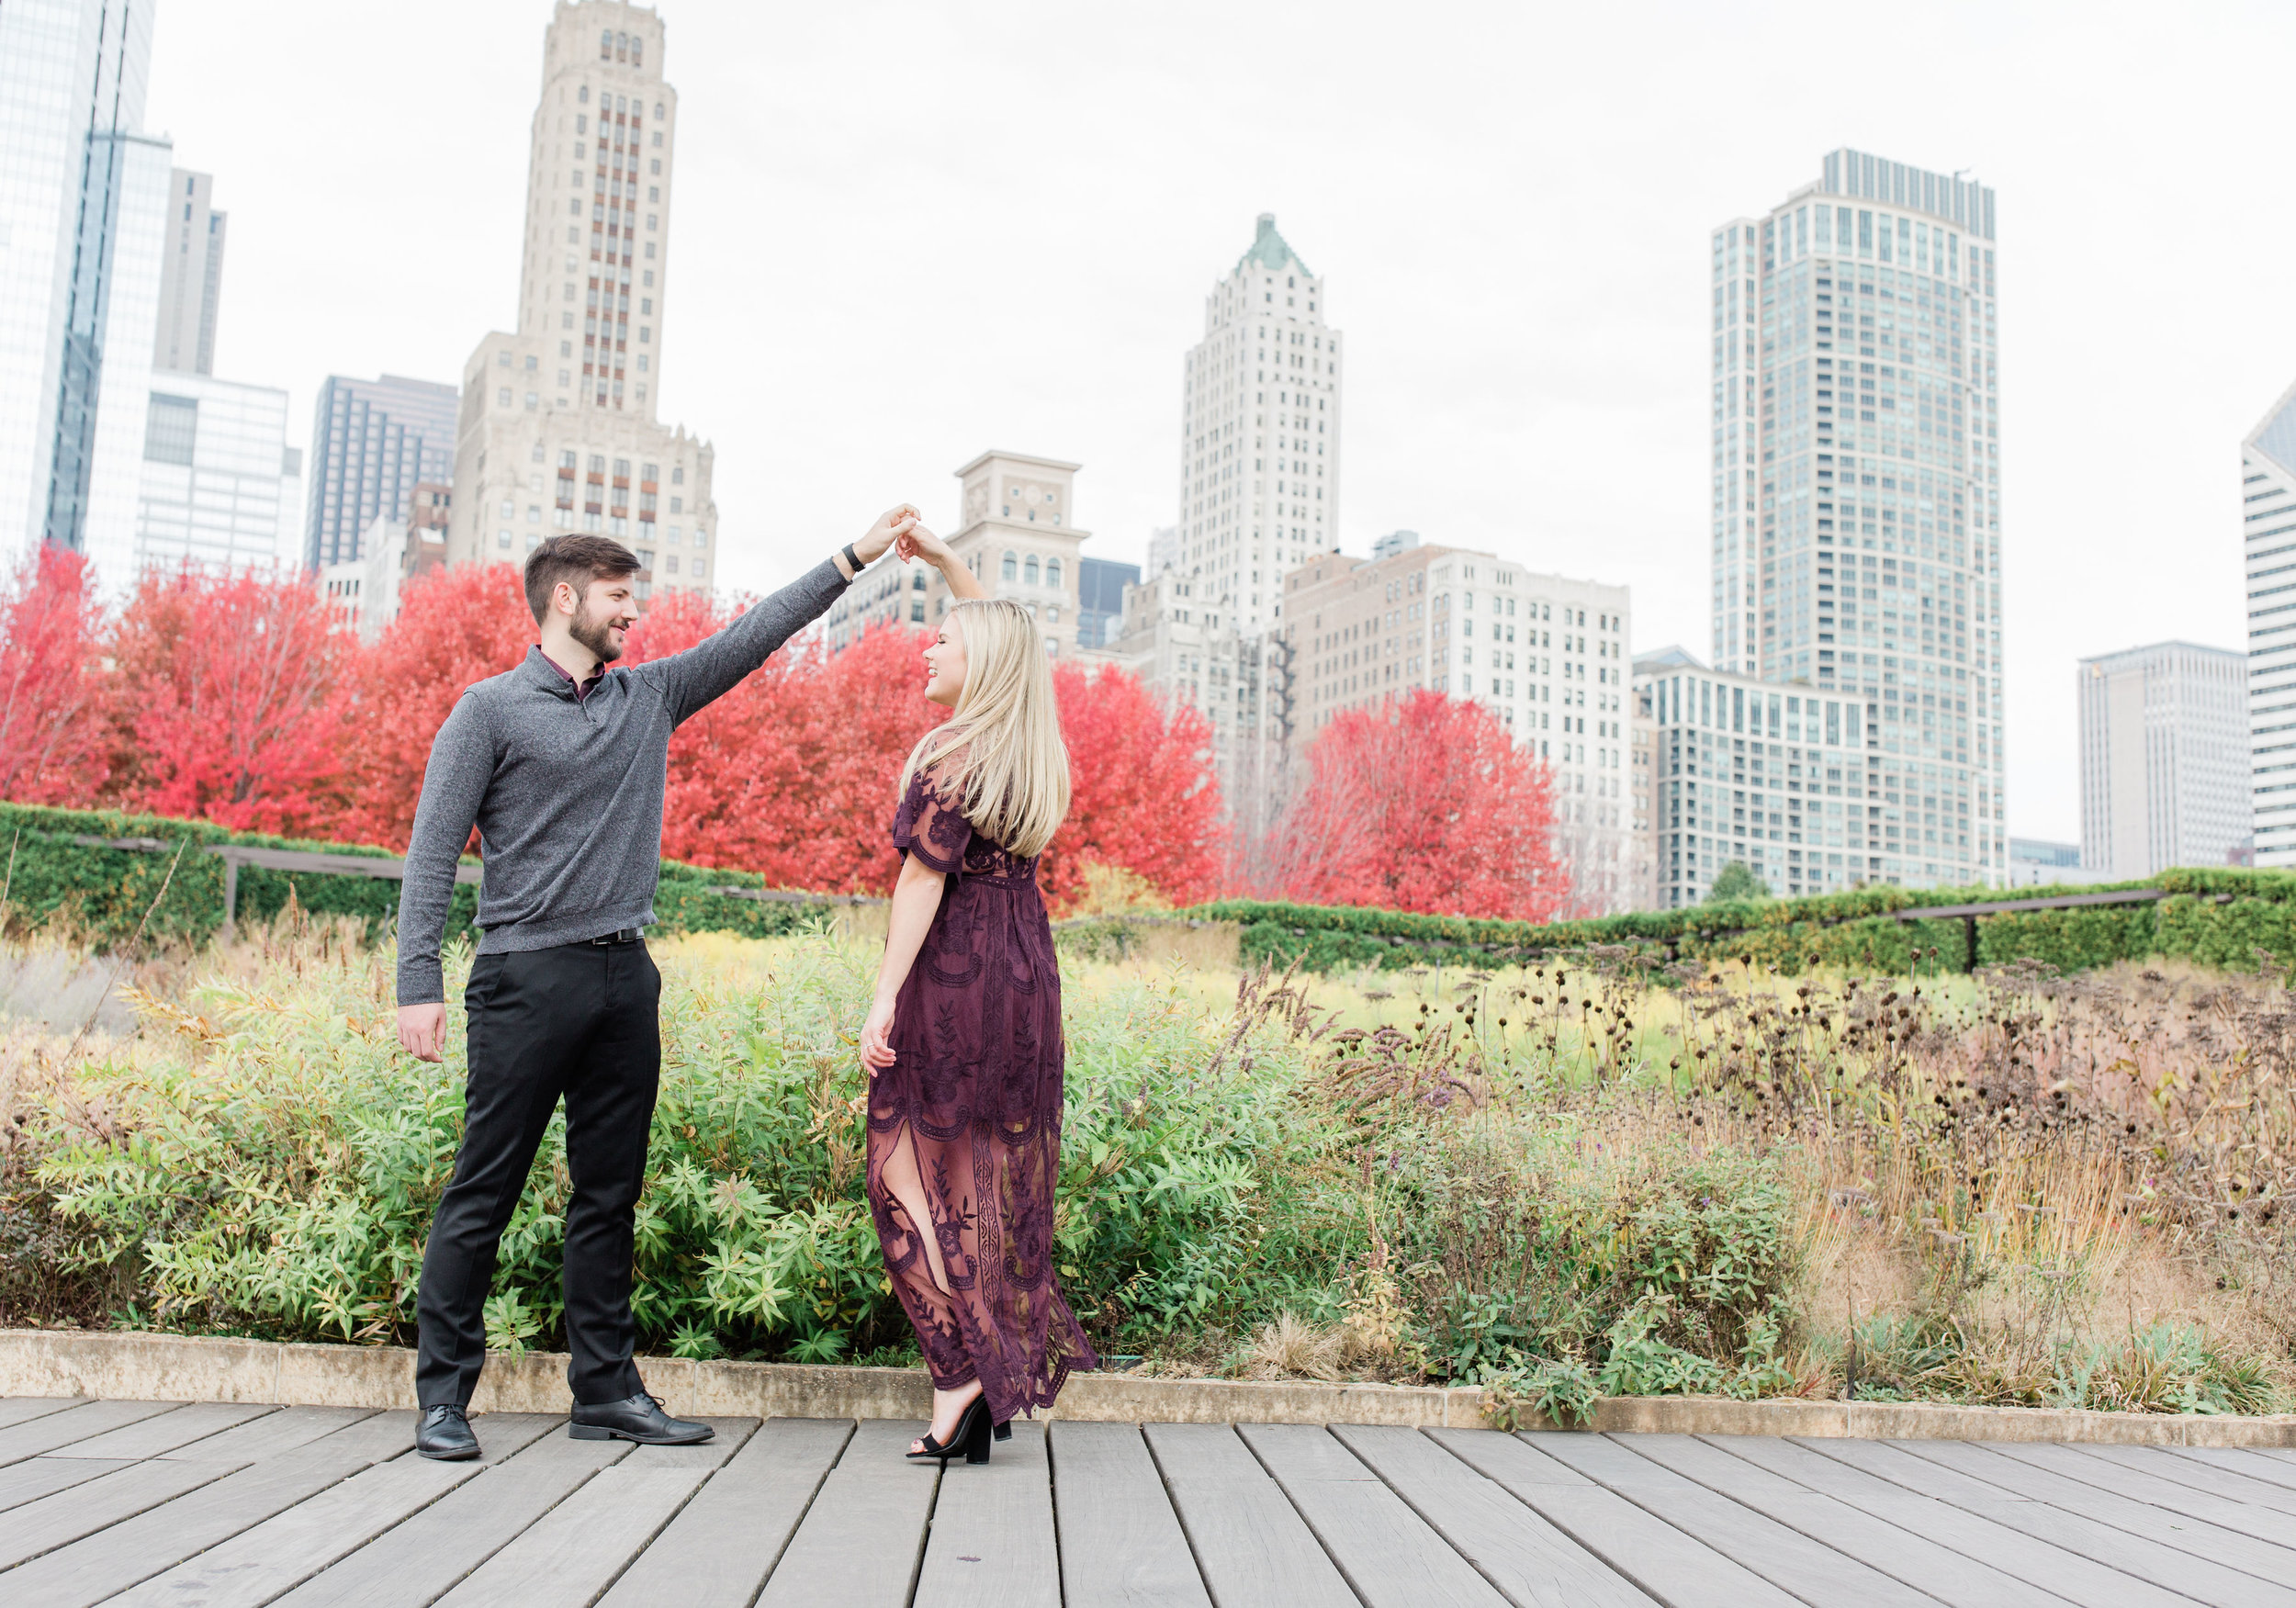 Chicago City Scape Engagement Session captured by Kenzie Leigh Photography. See more engagement photo ideas at CHItheeWED.com!